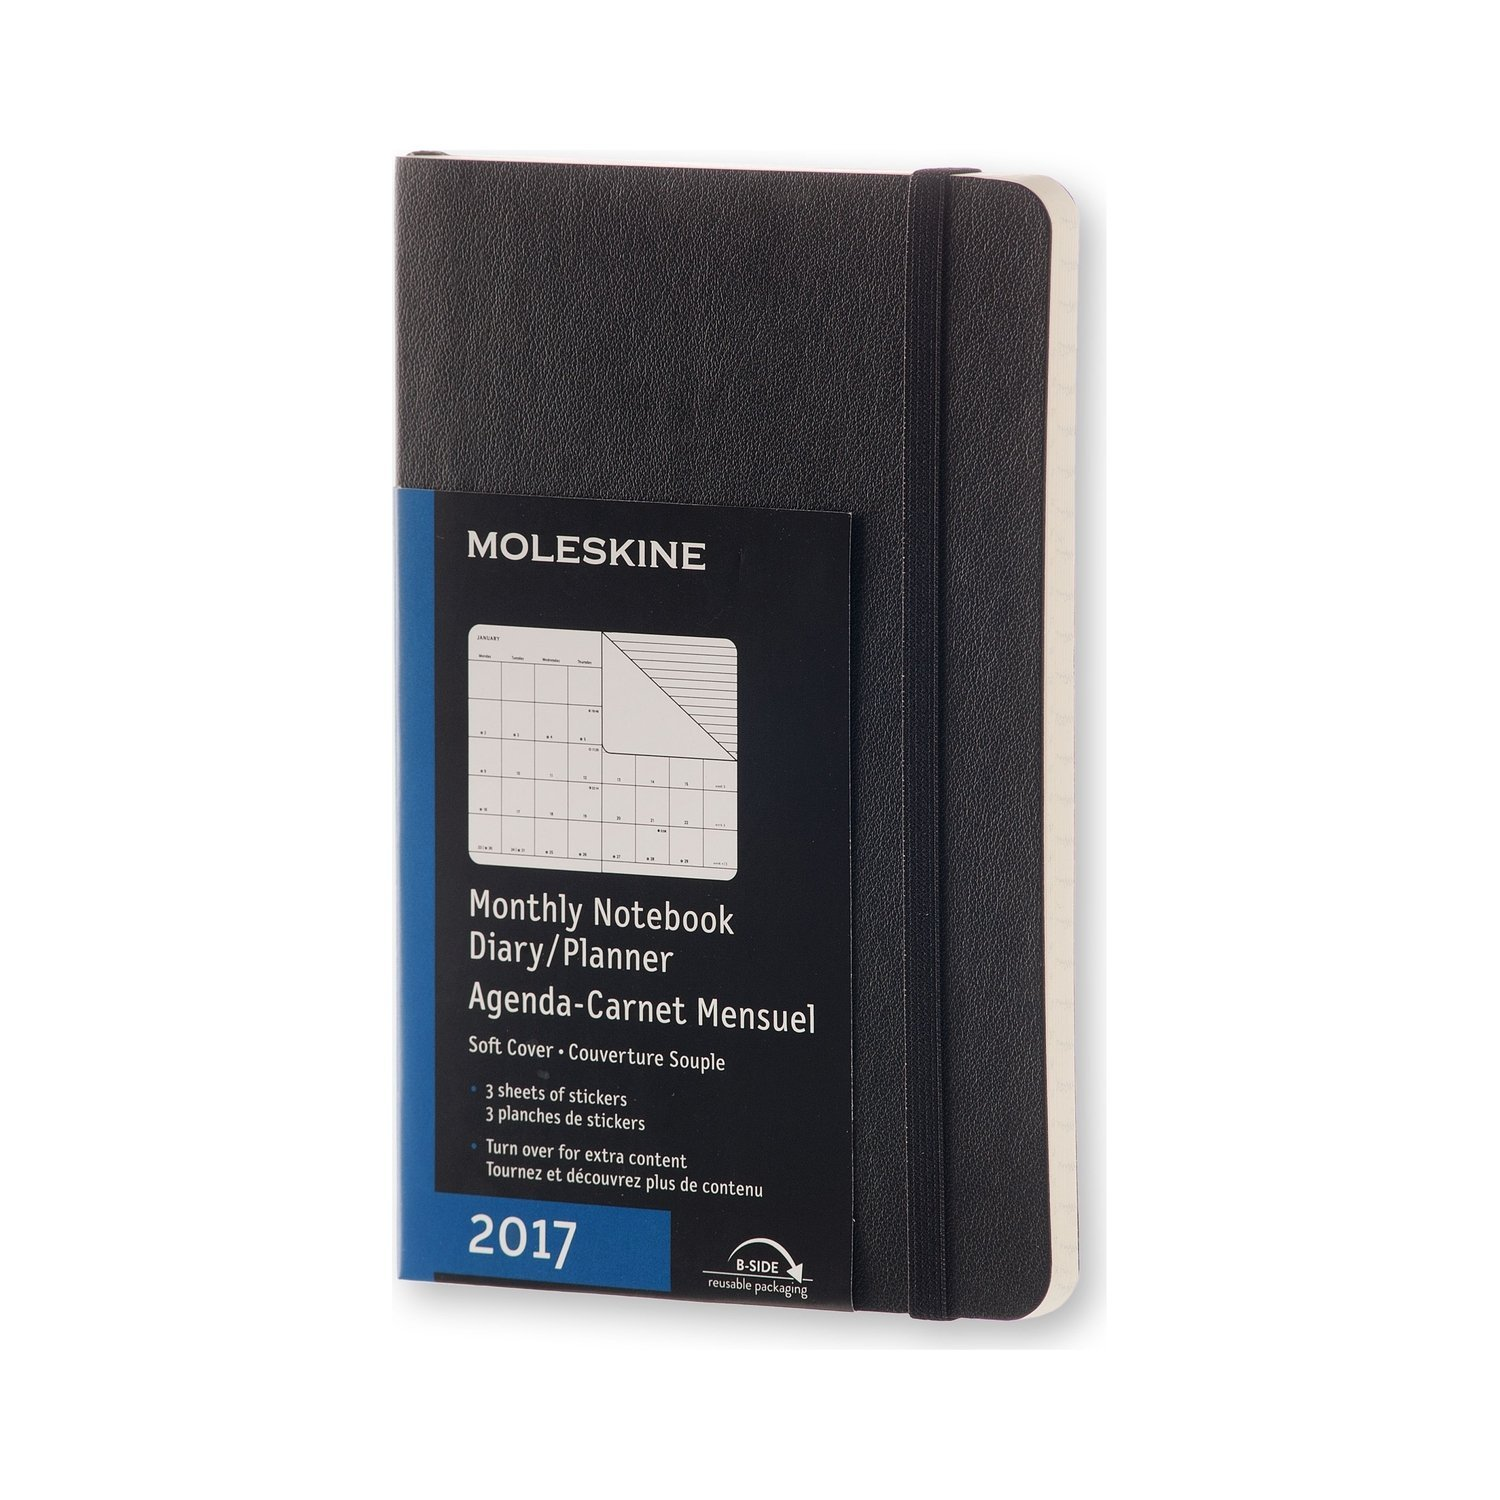 Moleskine Classic 12 Month 2017 Monthly Planner, Soft Cover, Pocket (3.5'' x 5.5'') Black by Moleskine (Image #1)